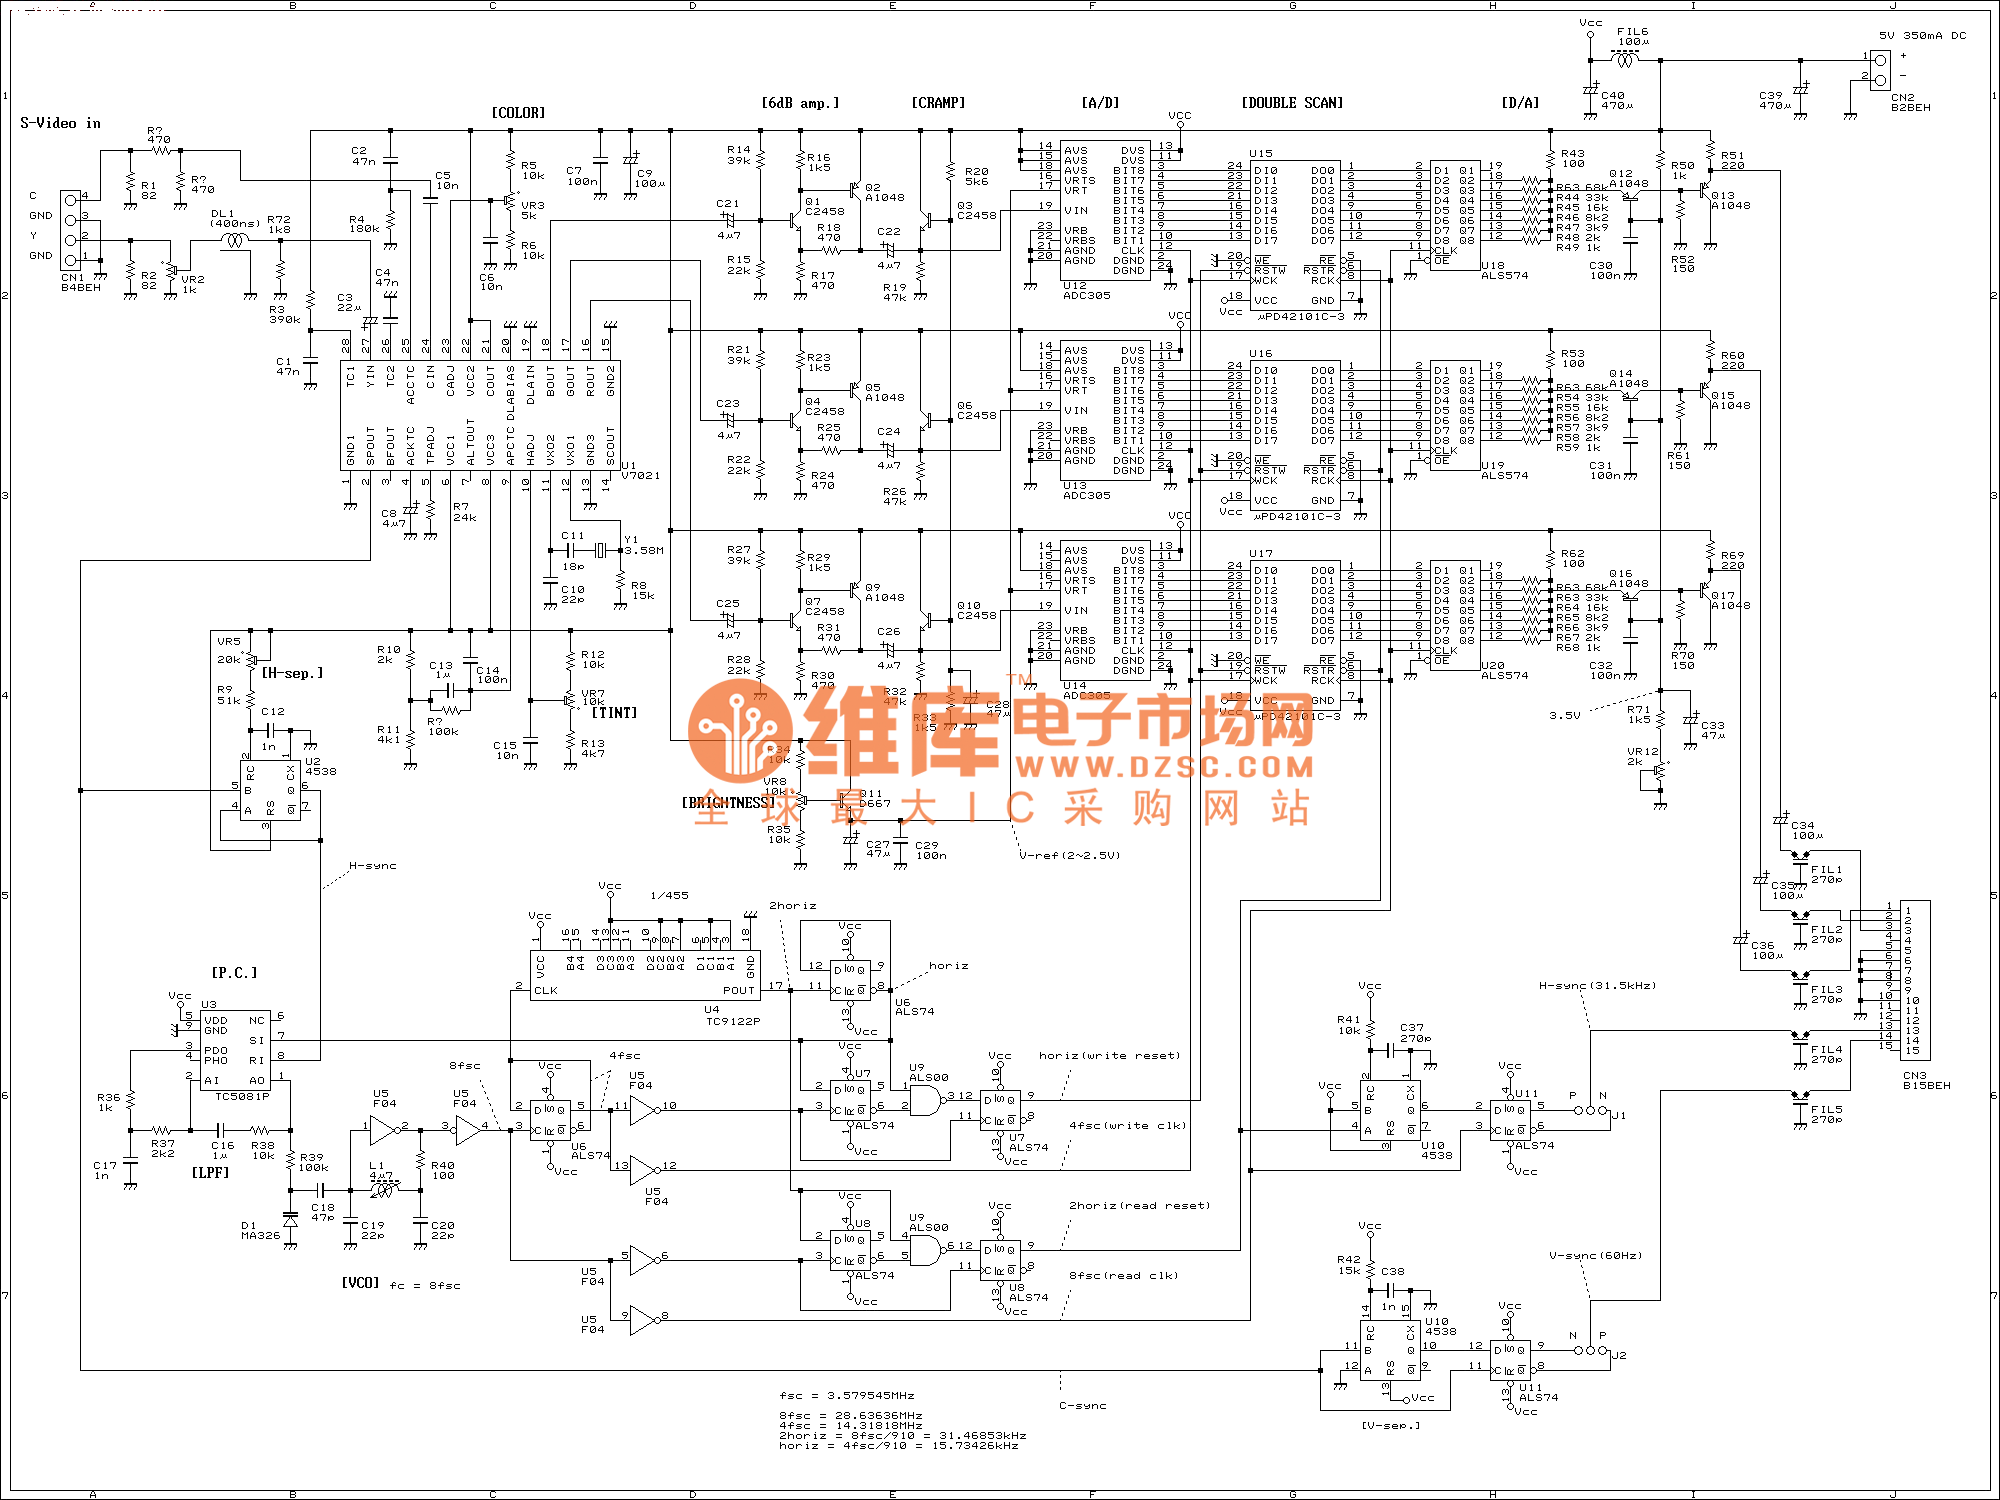 channel master wiring diagram lr 8925  antenna rotor wiring diagram moreover alliance antenna  antenna rotor wiring diagram moreover